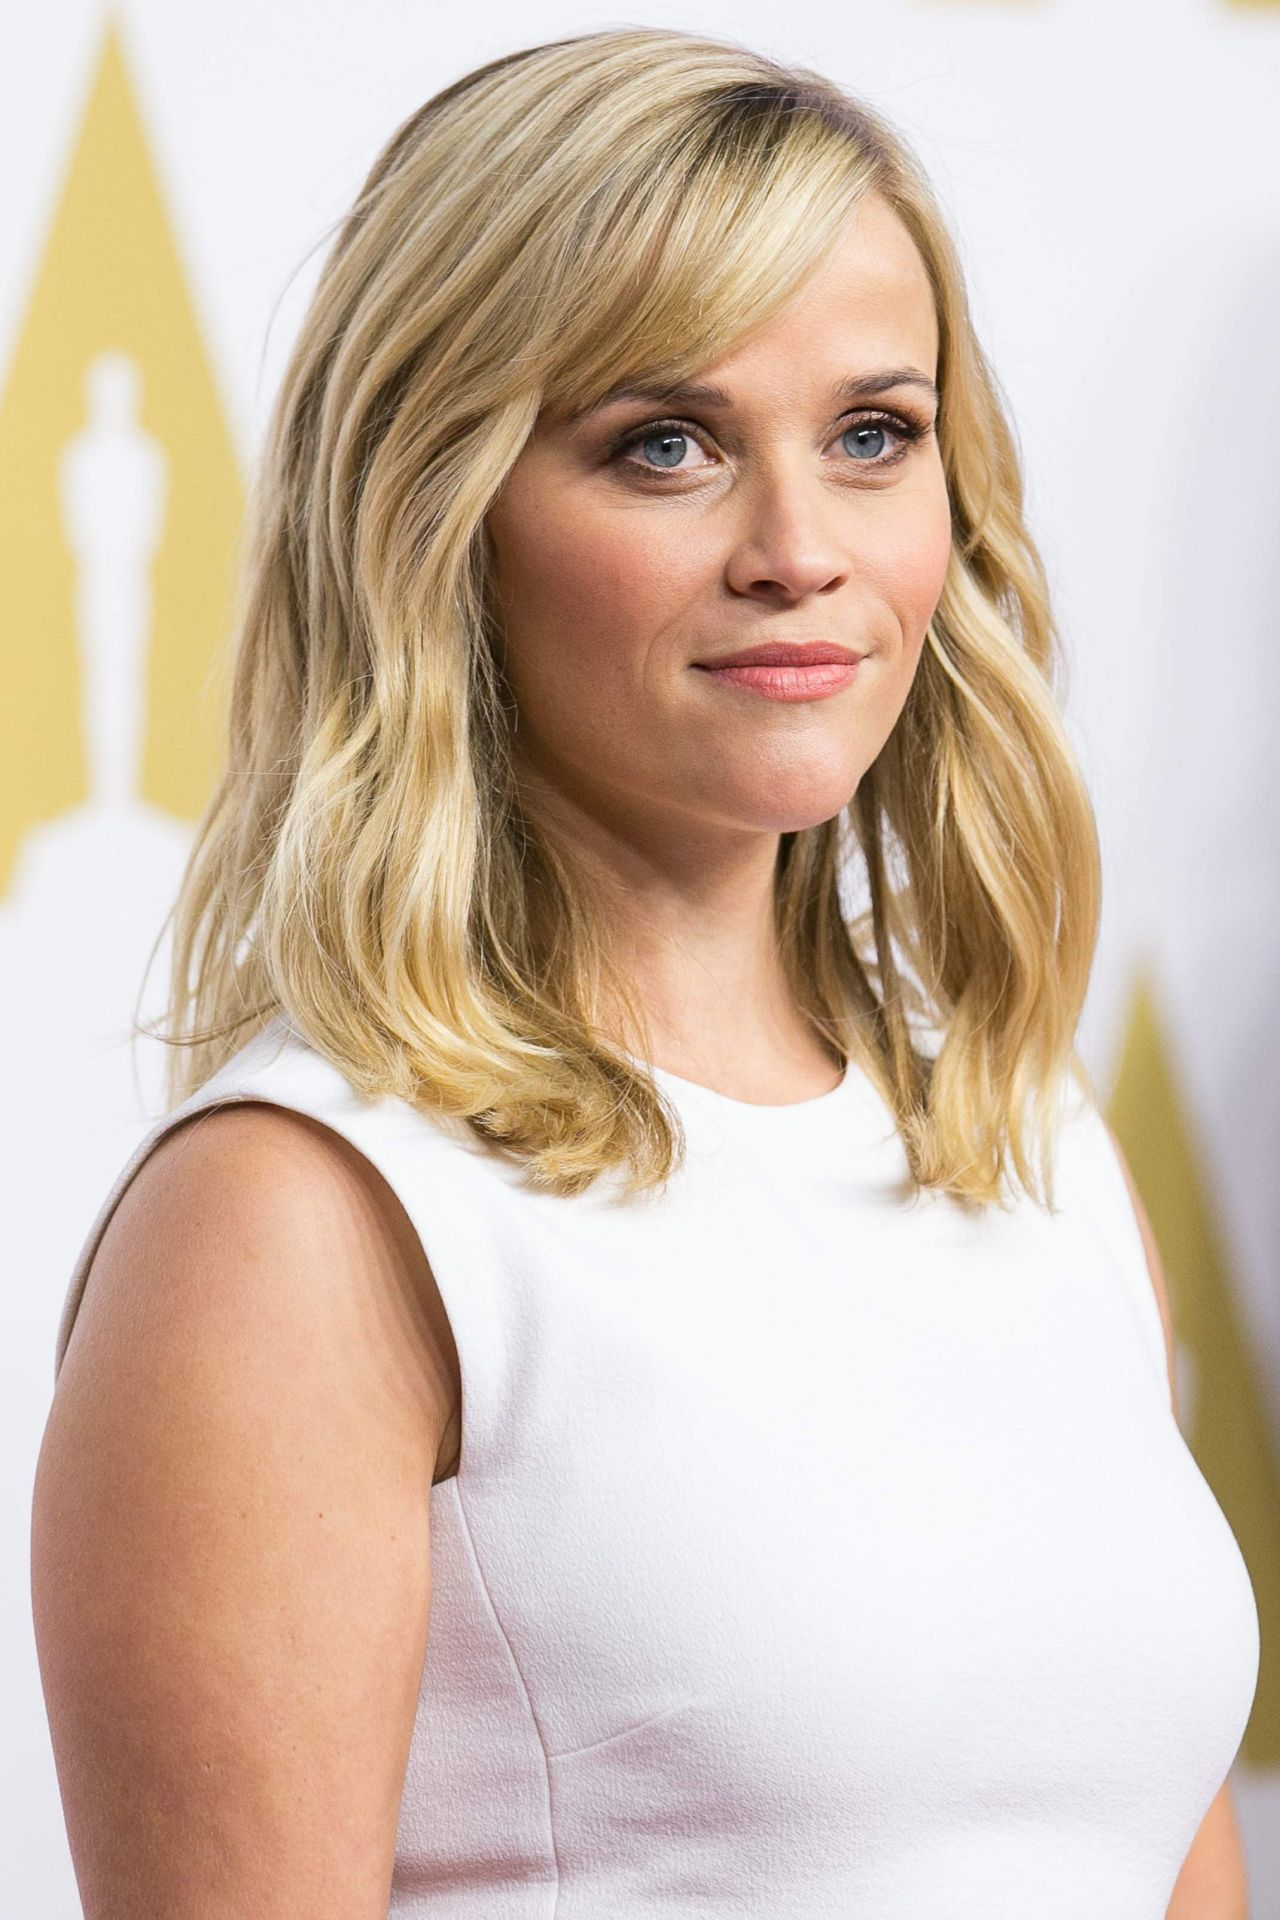 Hair Toppiks The Best Mens Hairstyles & Women's Haircuts ... Reese Witherspoon